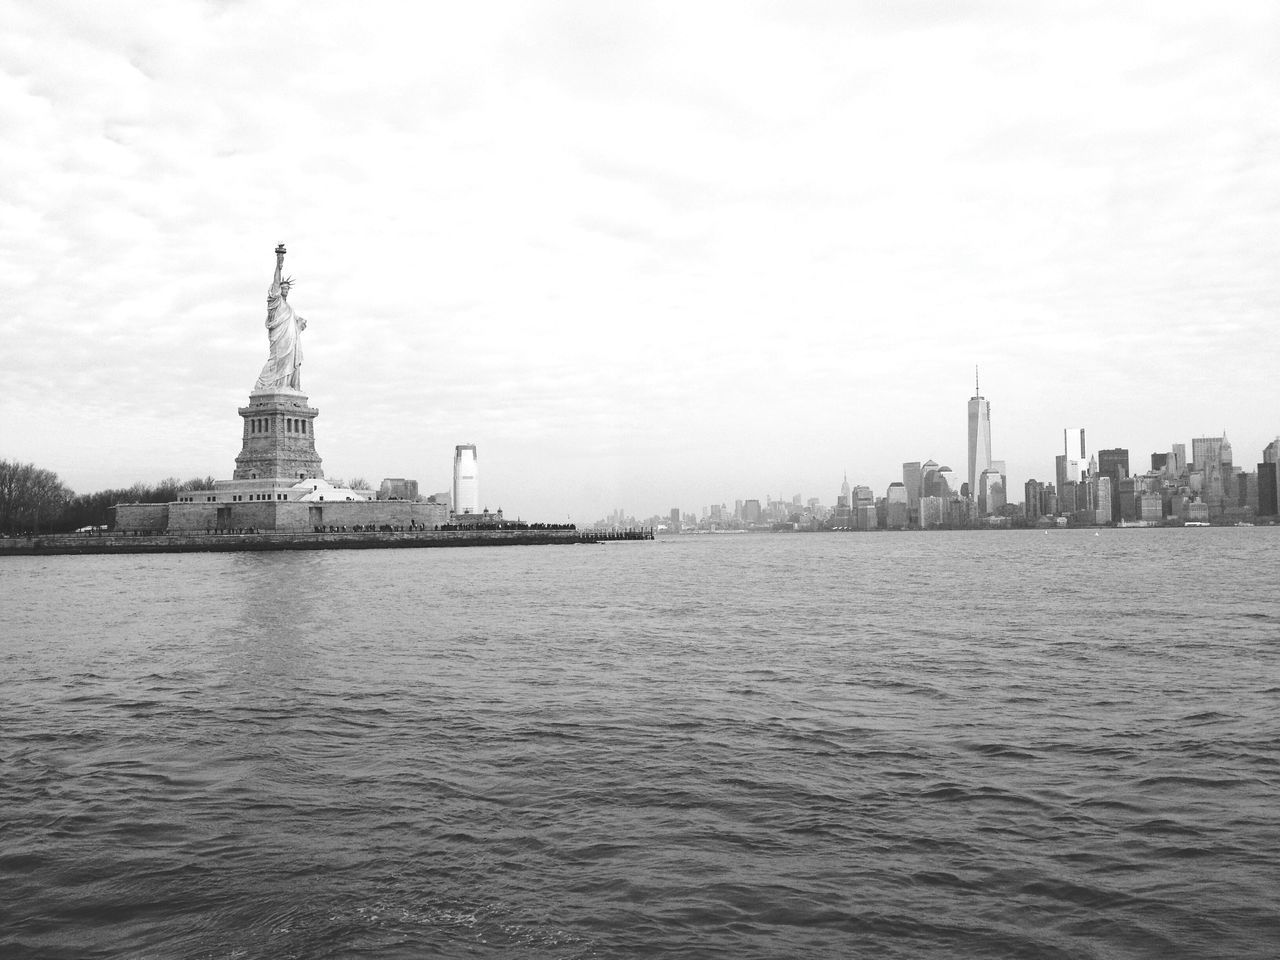 Statue Of Liberty Amidst Sea Against Sky